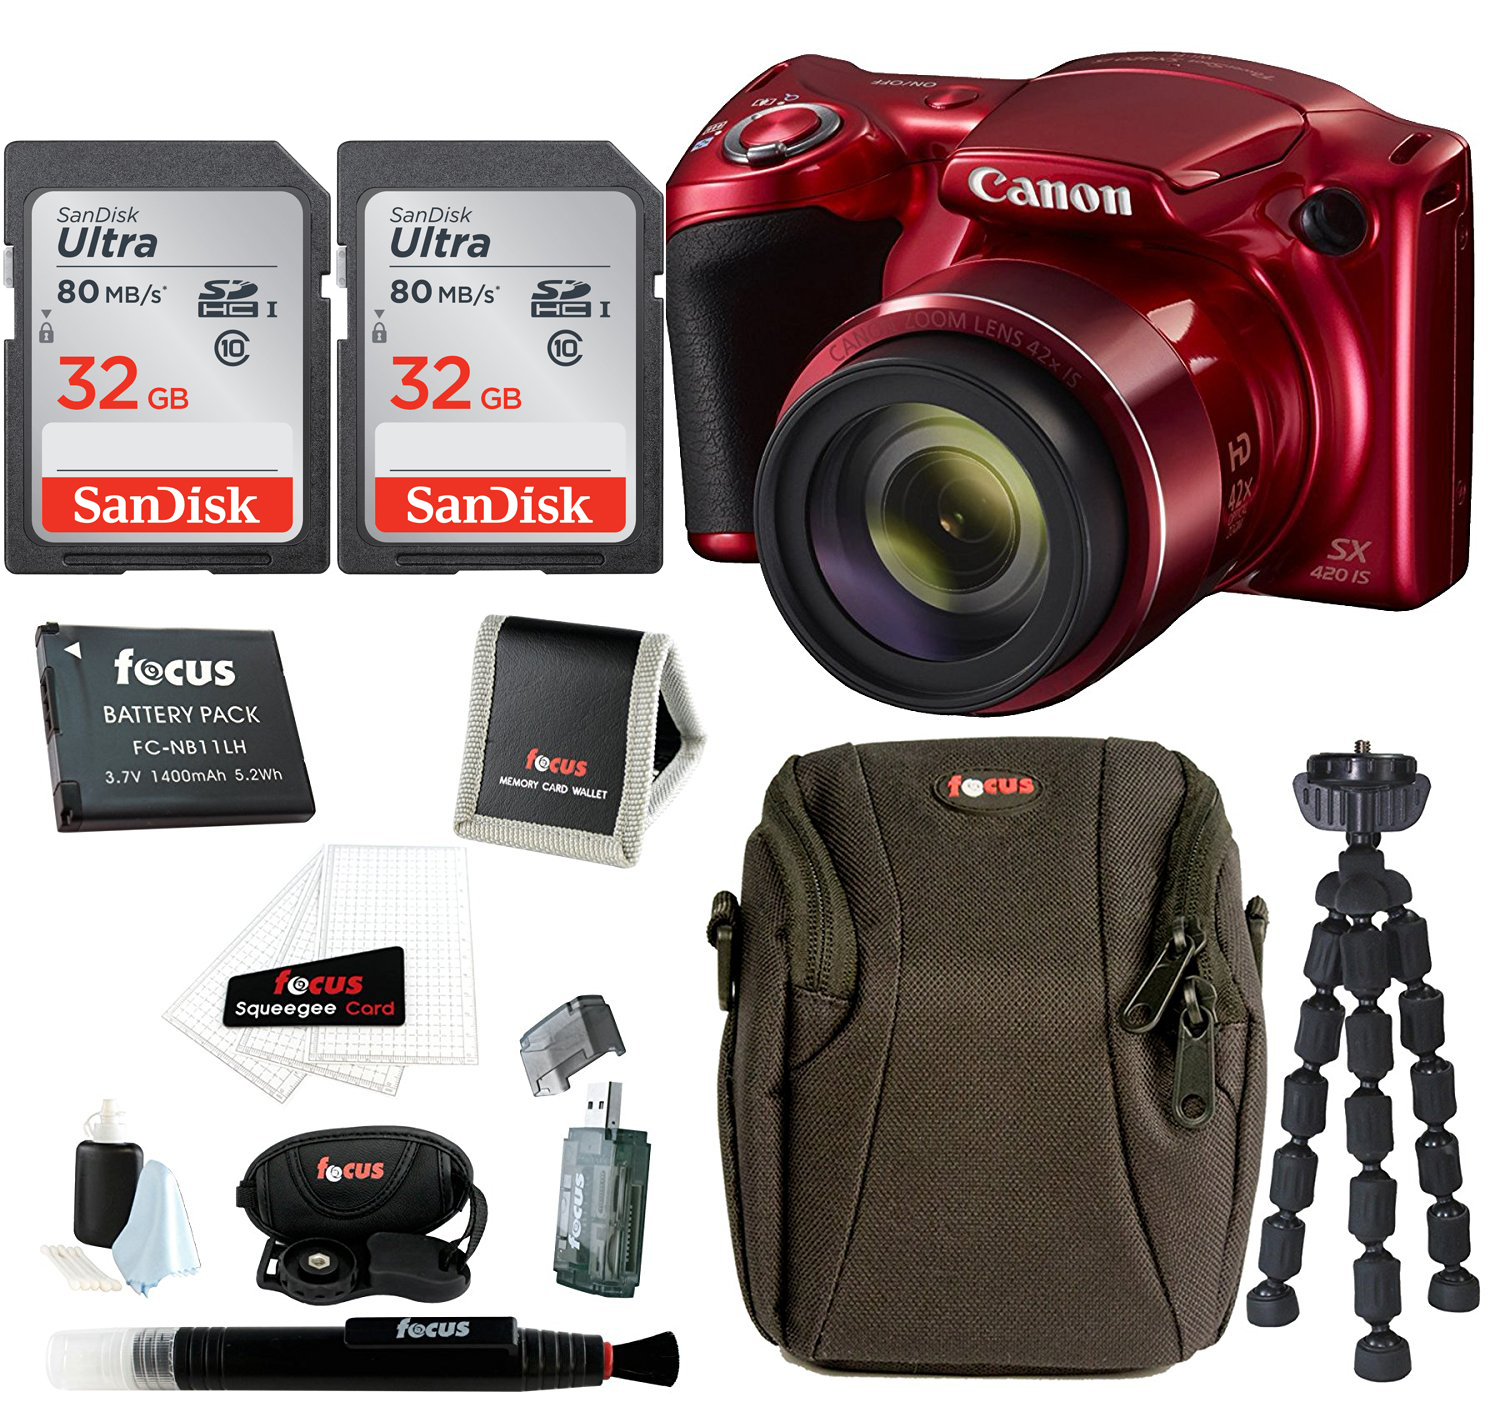 Canon PowerShot SX420 Digital Camera (Red) + Two 32GB SD Cards + Accessory Bundle